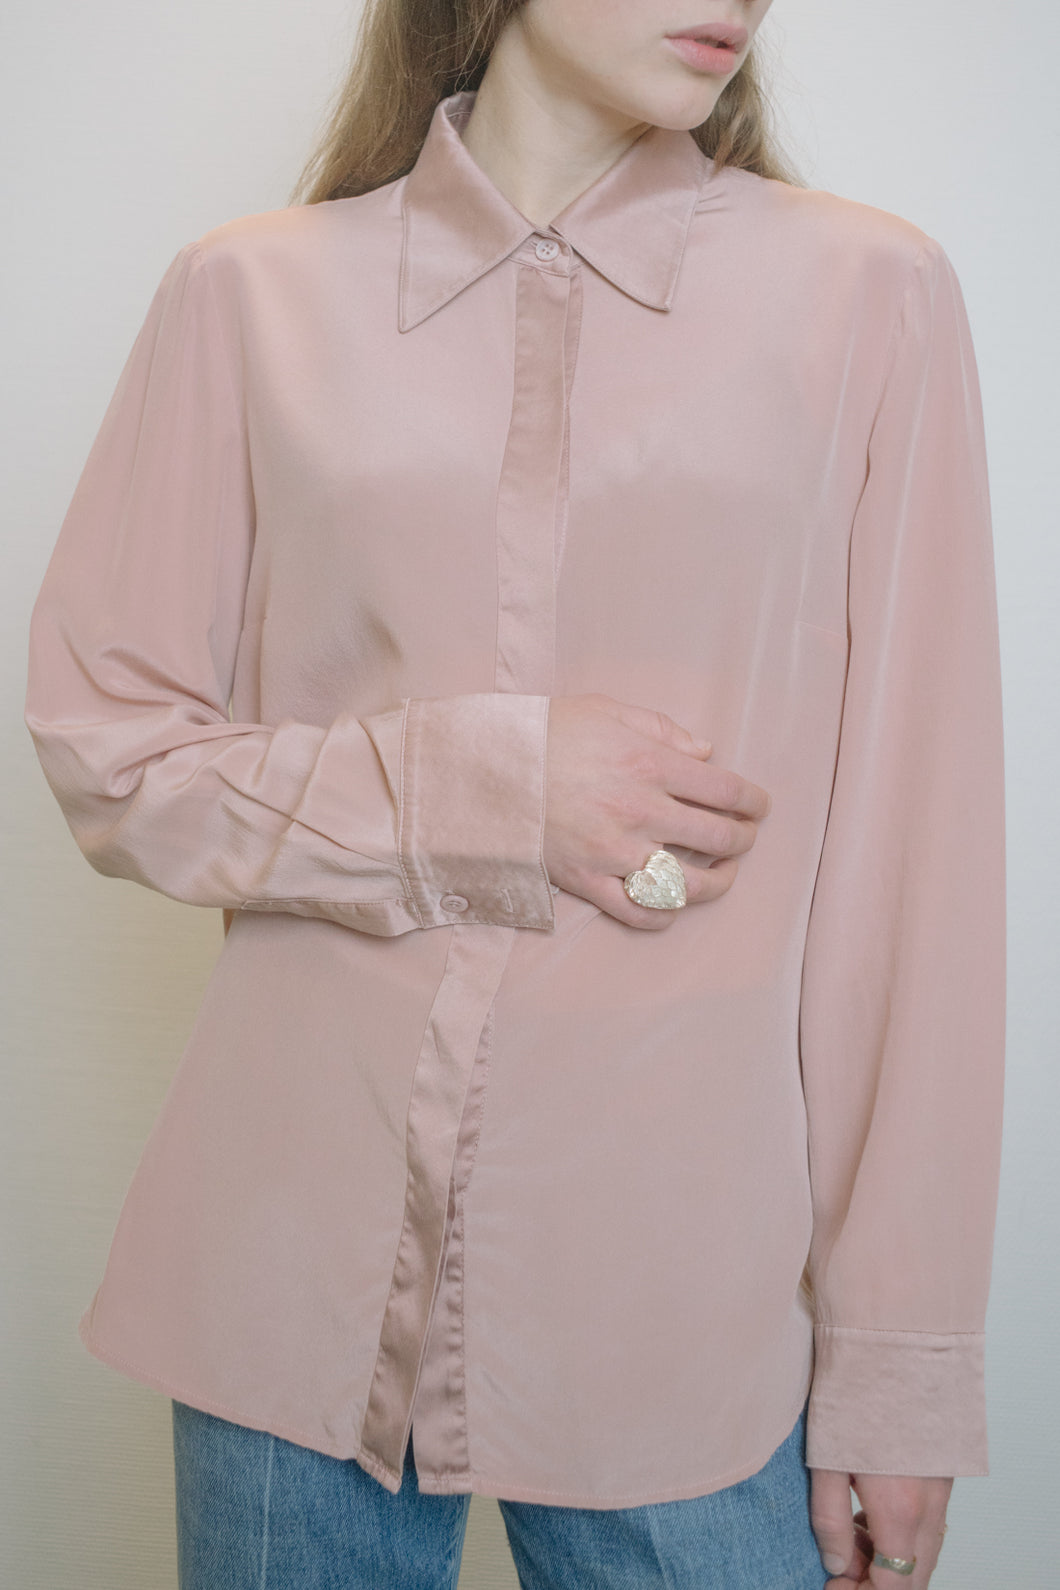 Luisa Spagnoli Pink Silk Shirt - Studio Travel